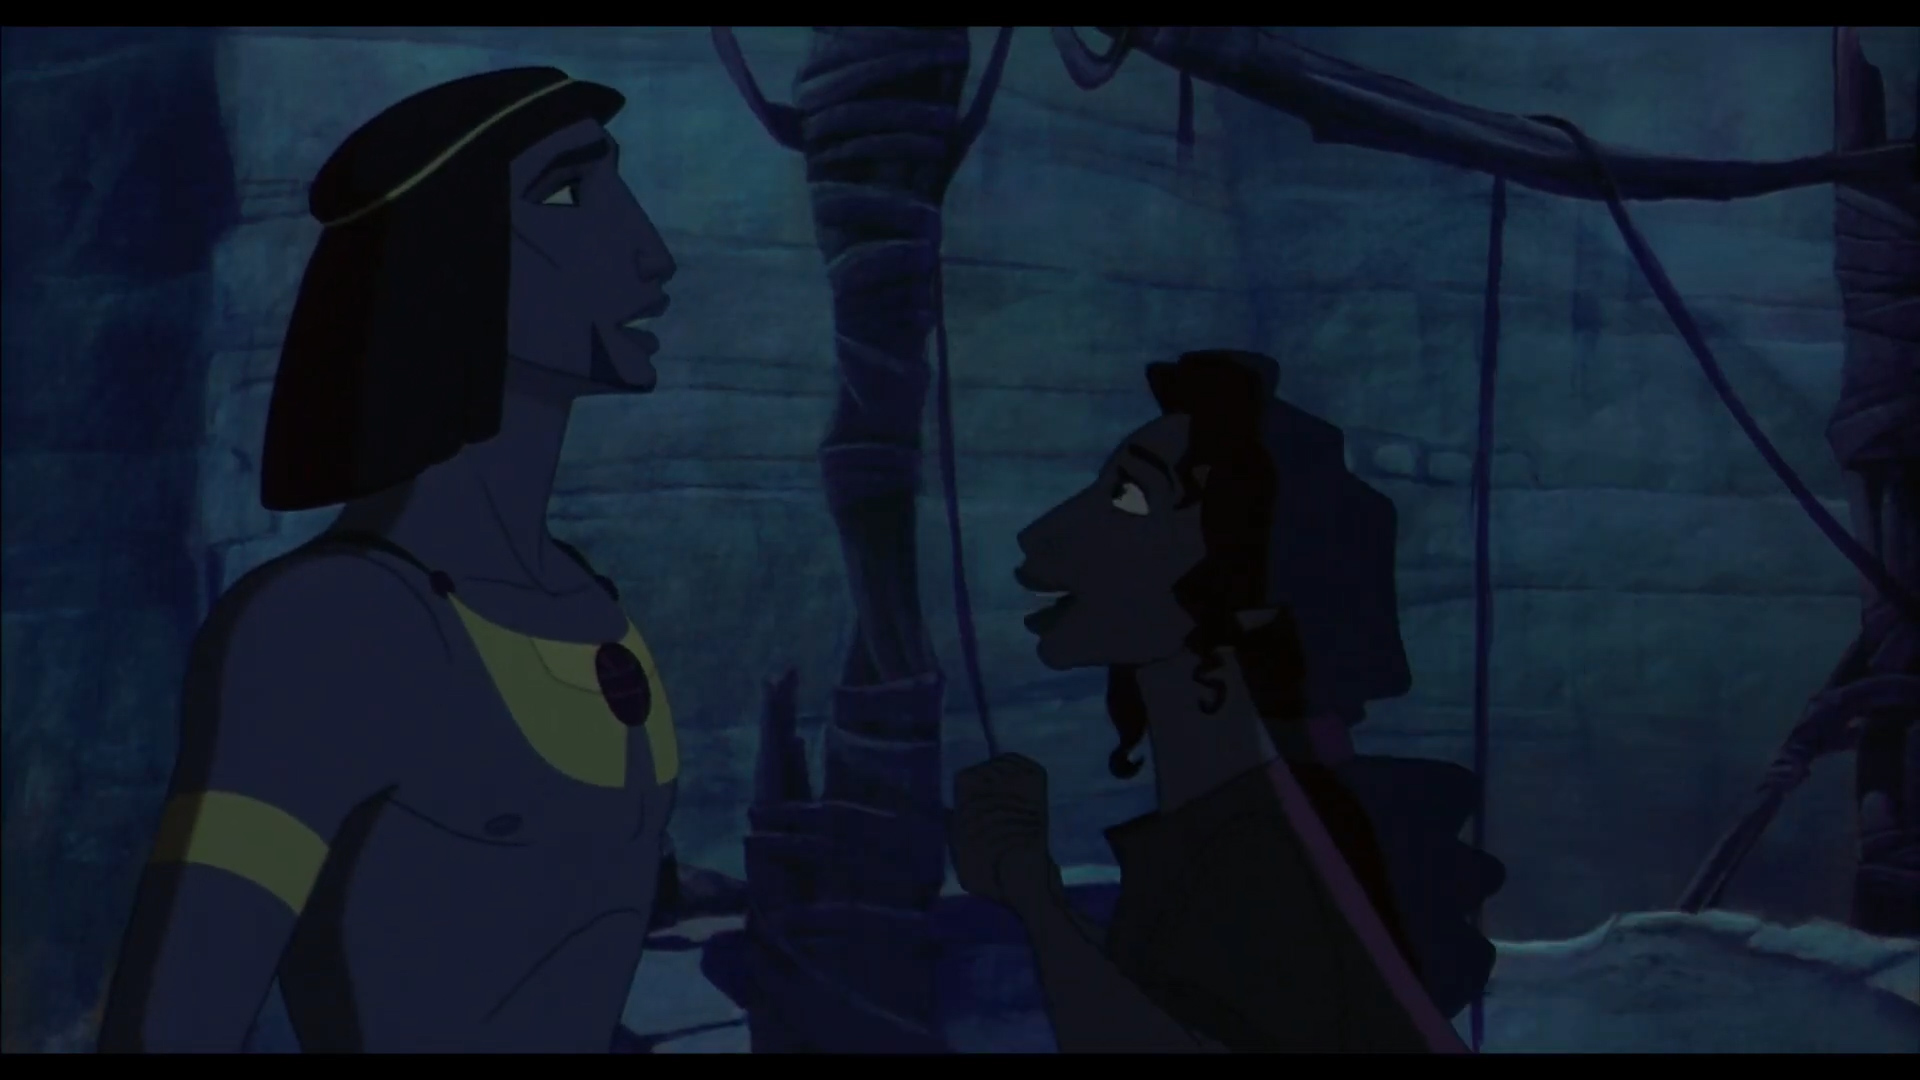 [1] The Prince of Egypt - Moses Meets Miriam and Aaron